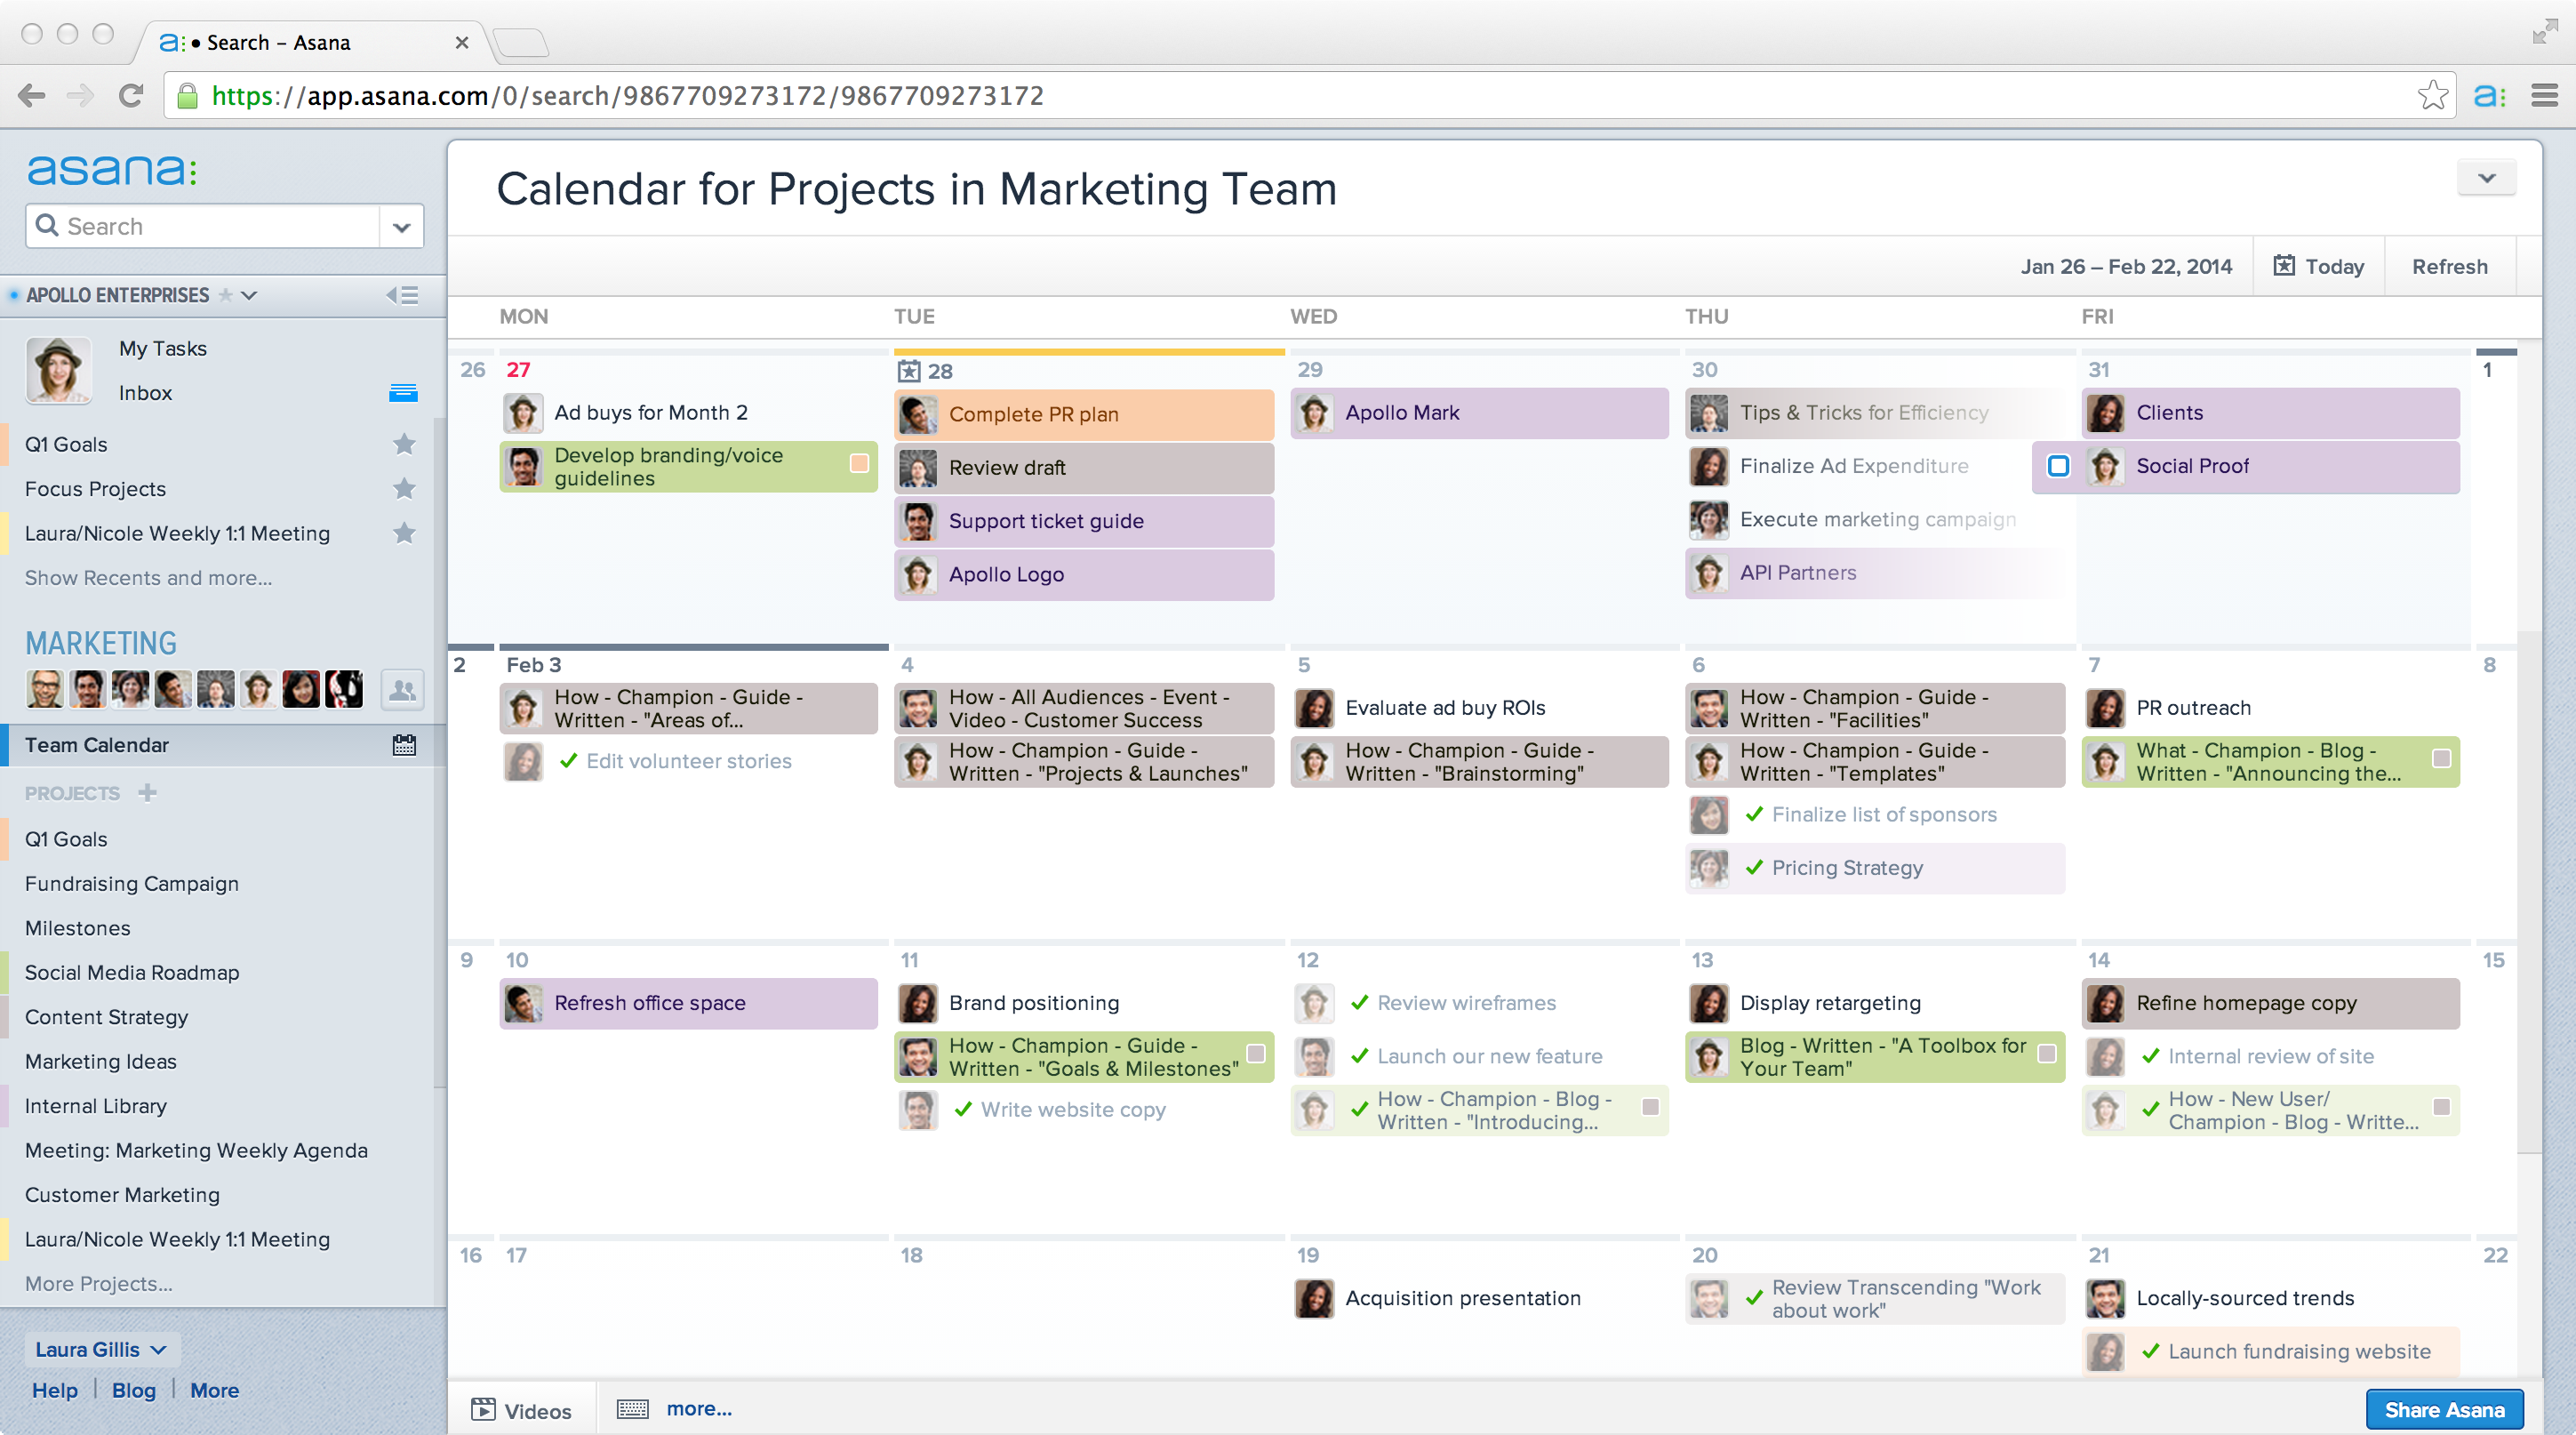 Asana unveils calendars a new way to visualize project deadlines calendars in asana 1 team wide view nvjuhfo Image collections